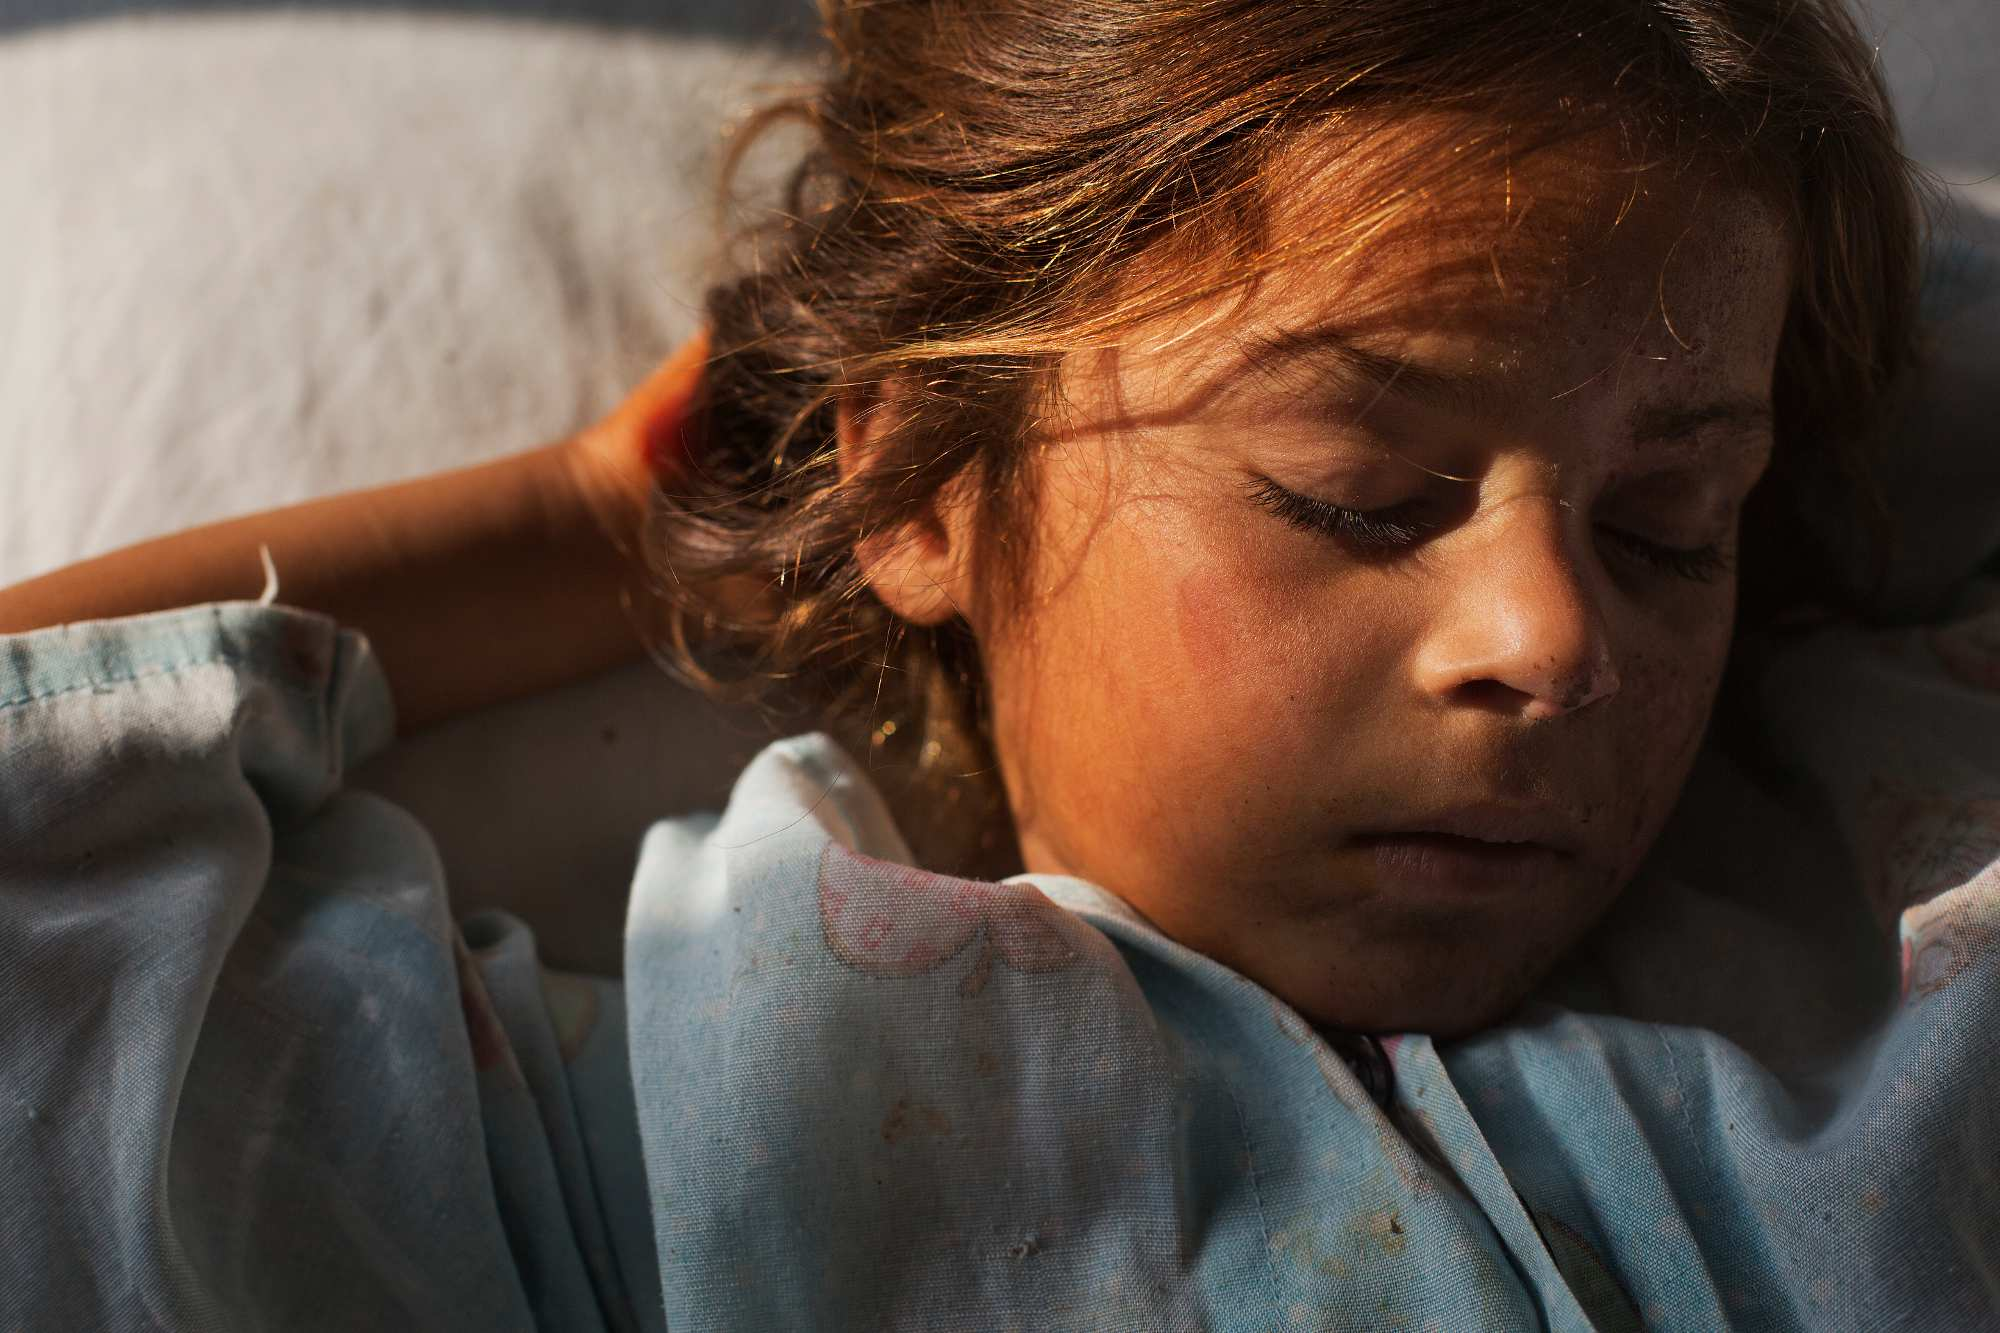 Yasamine, 5, from Logar, sleeps in C ward at Emergency. She suffered two broken legs and her face was burned in a blast that killed her aunt and uncle and injured her 8-month-old cousin, Abdullah.